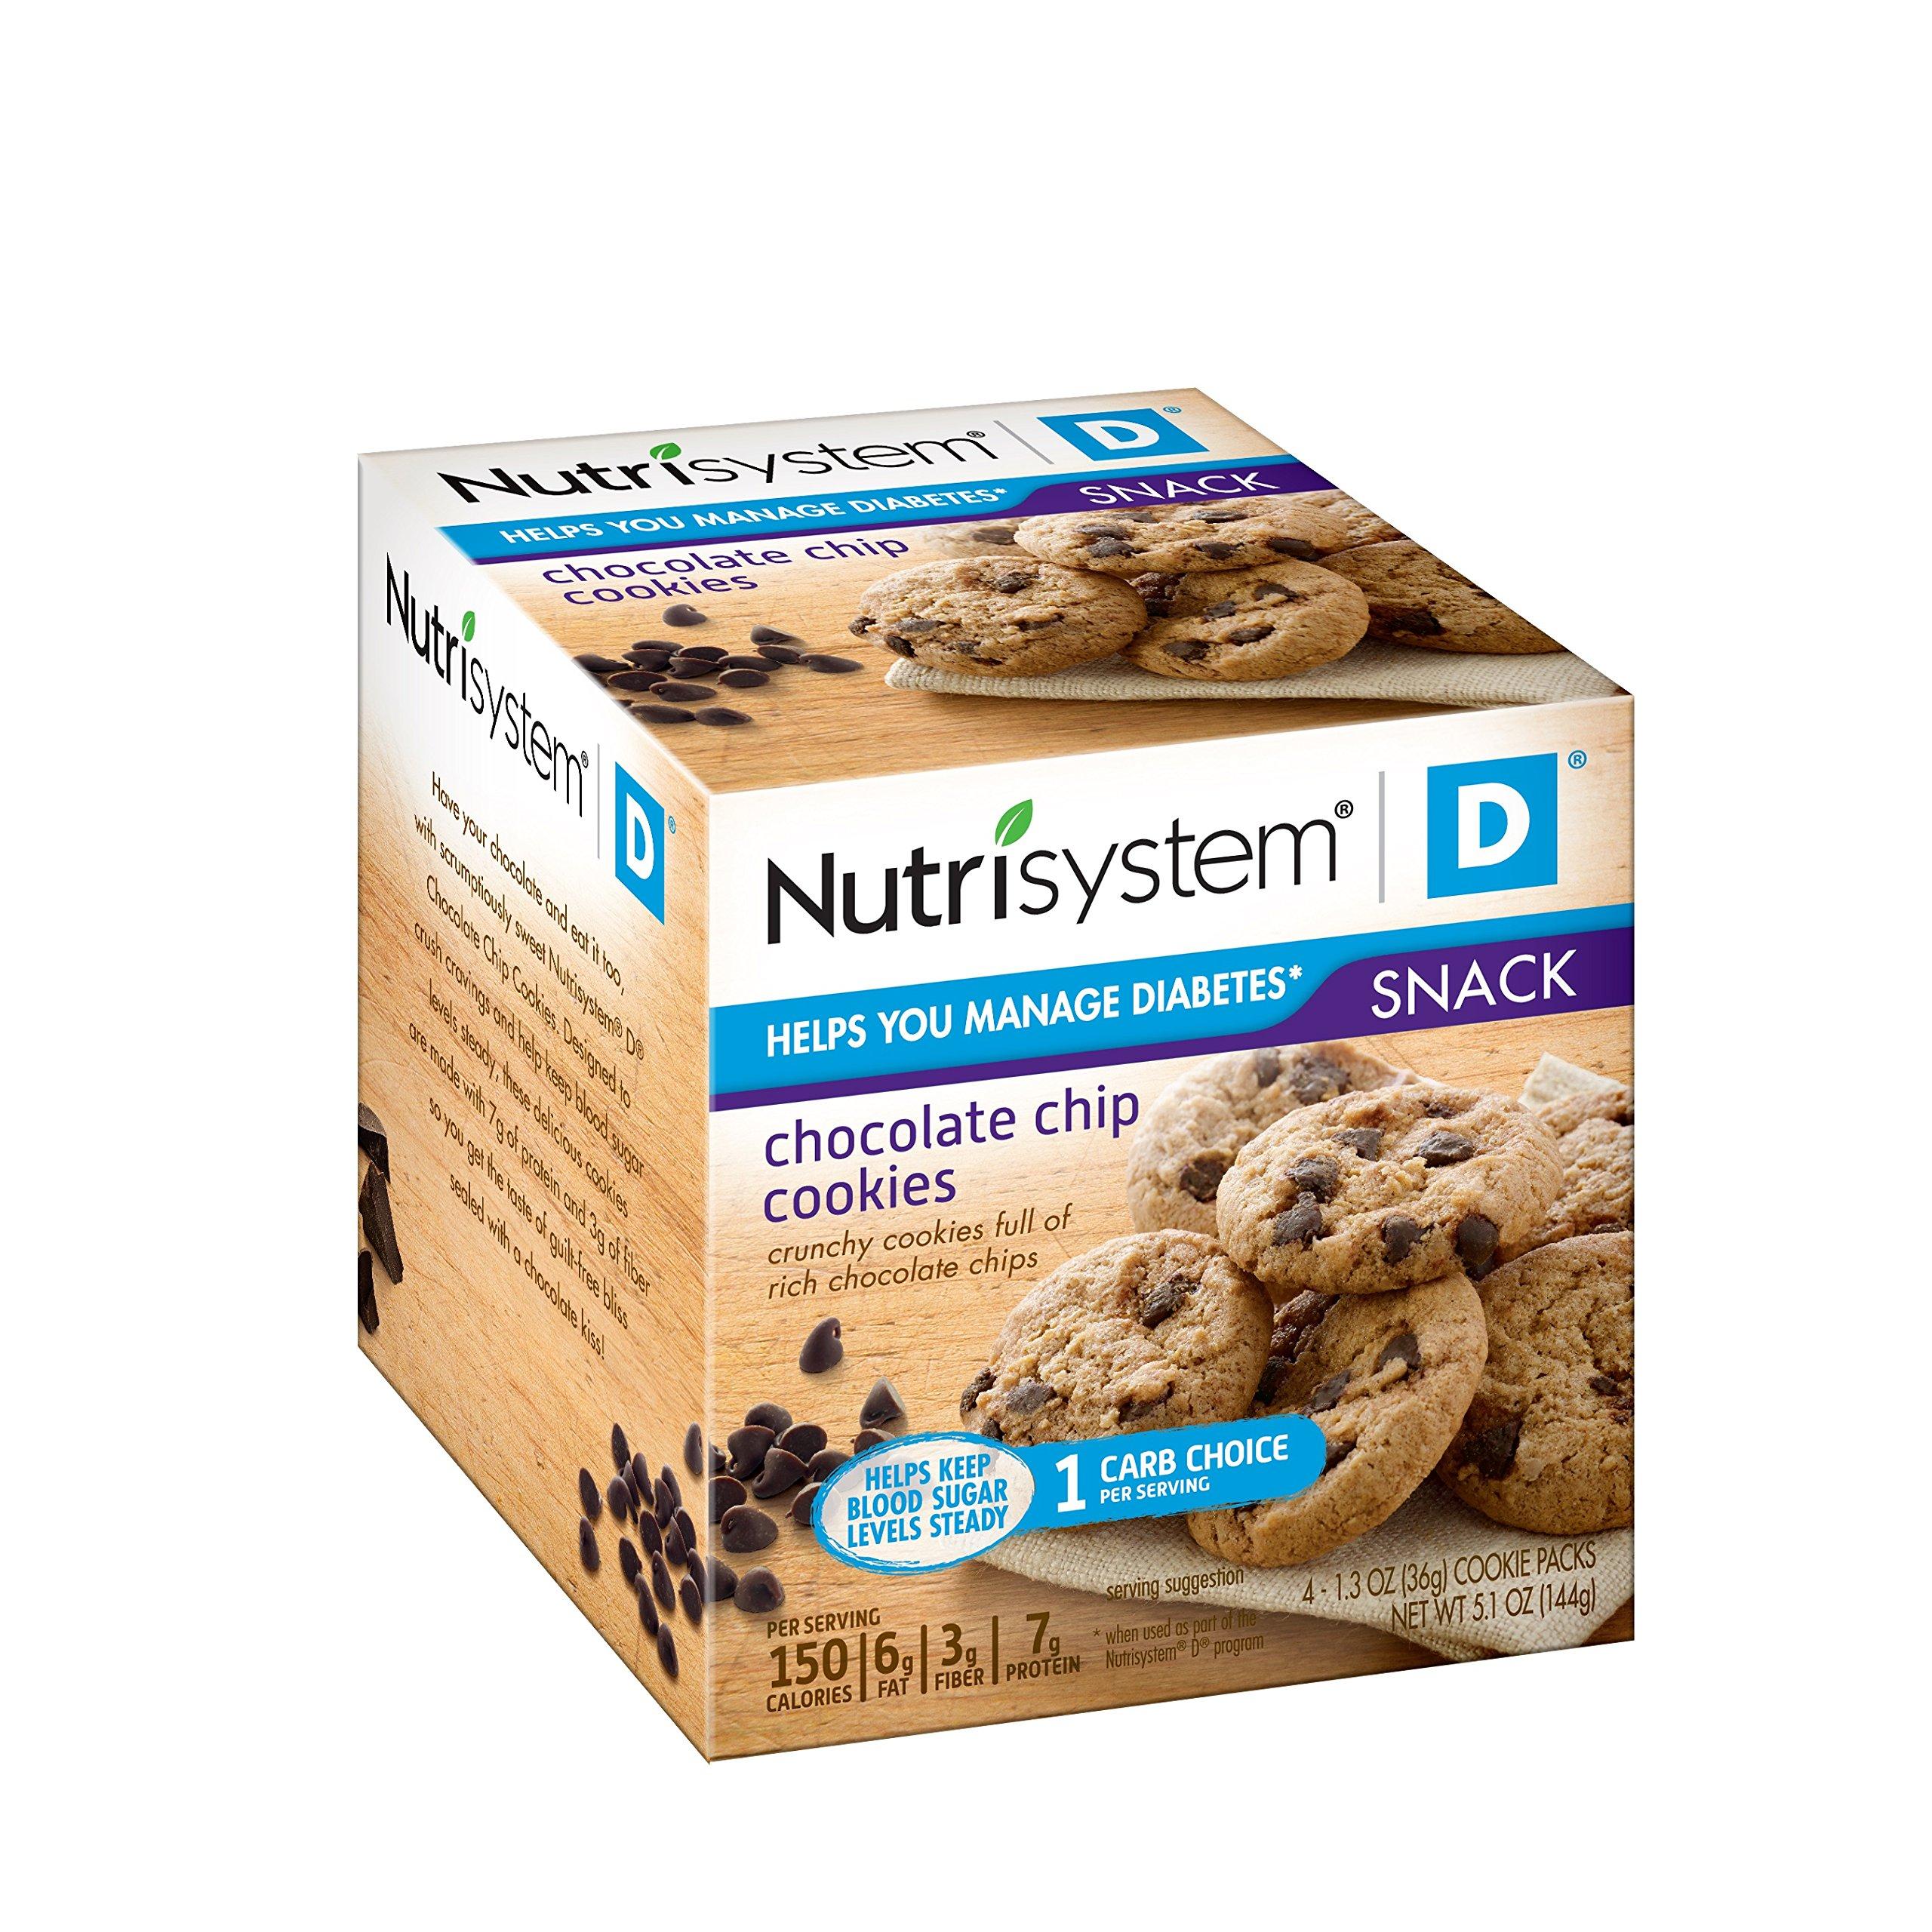 Nutrisystem® D® Chocolate Chip Cookies, 24 pack